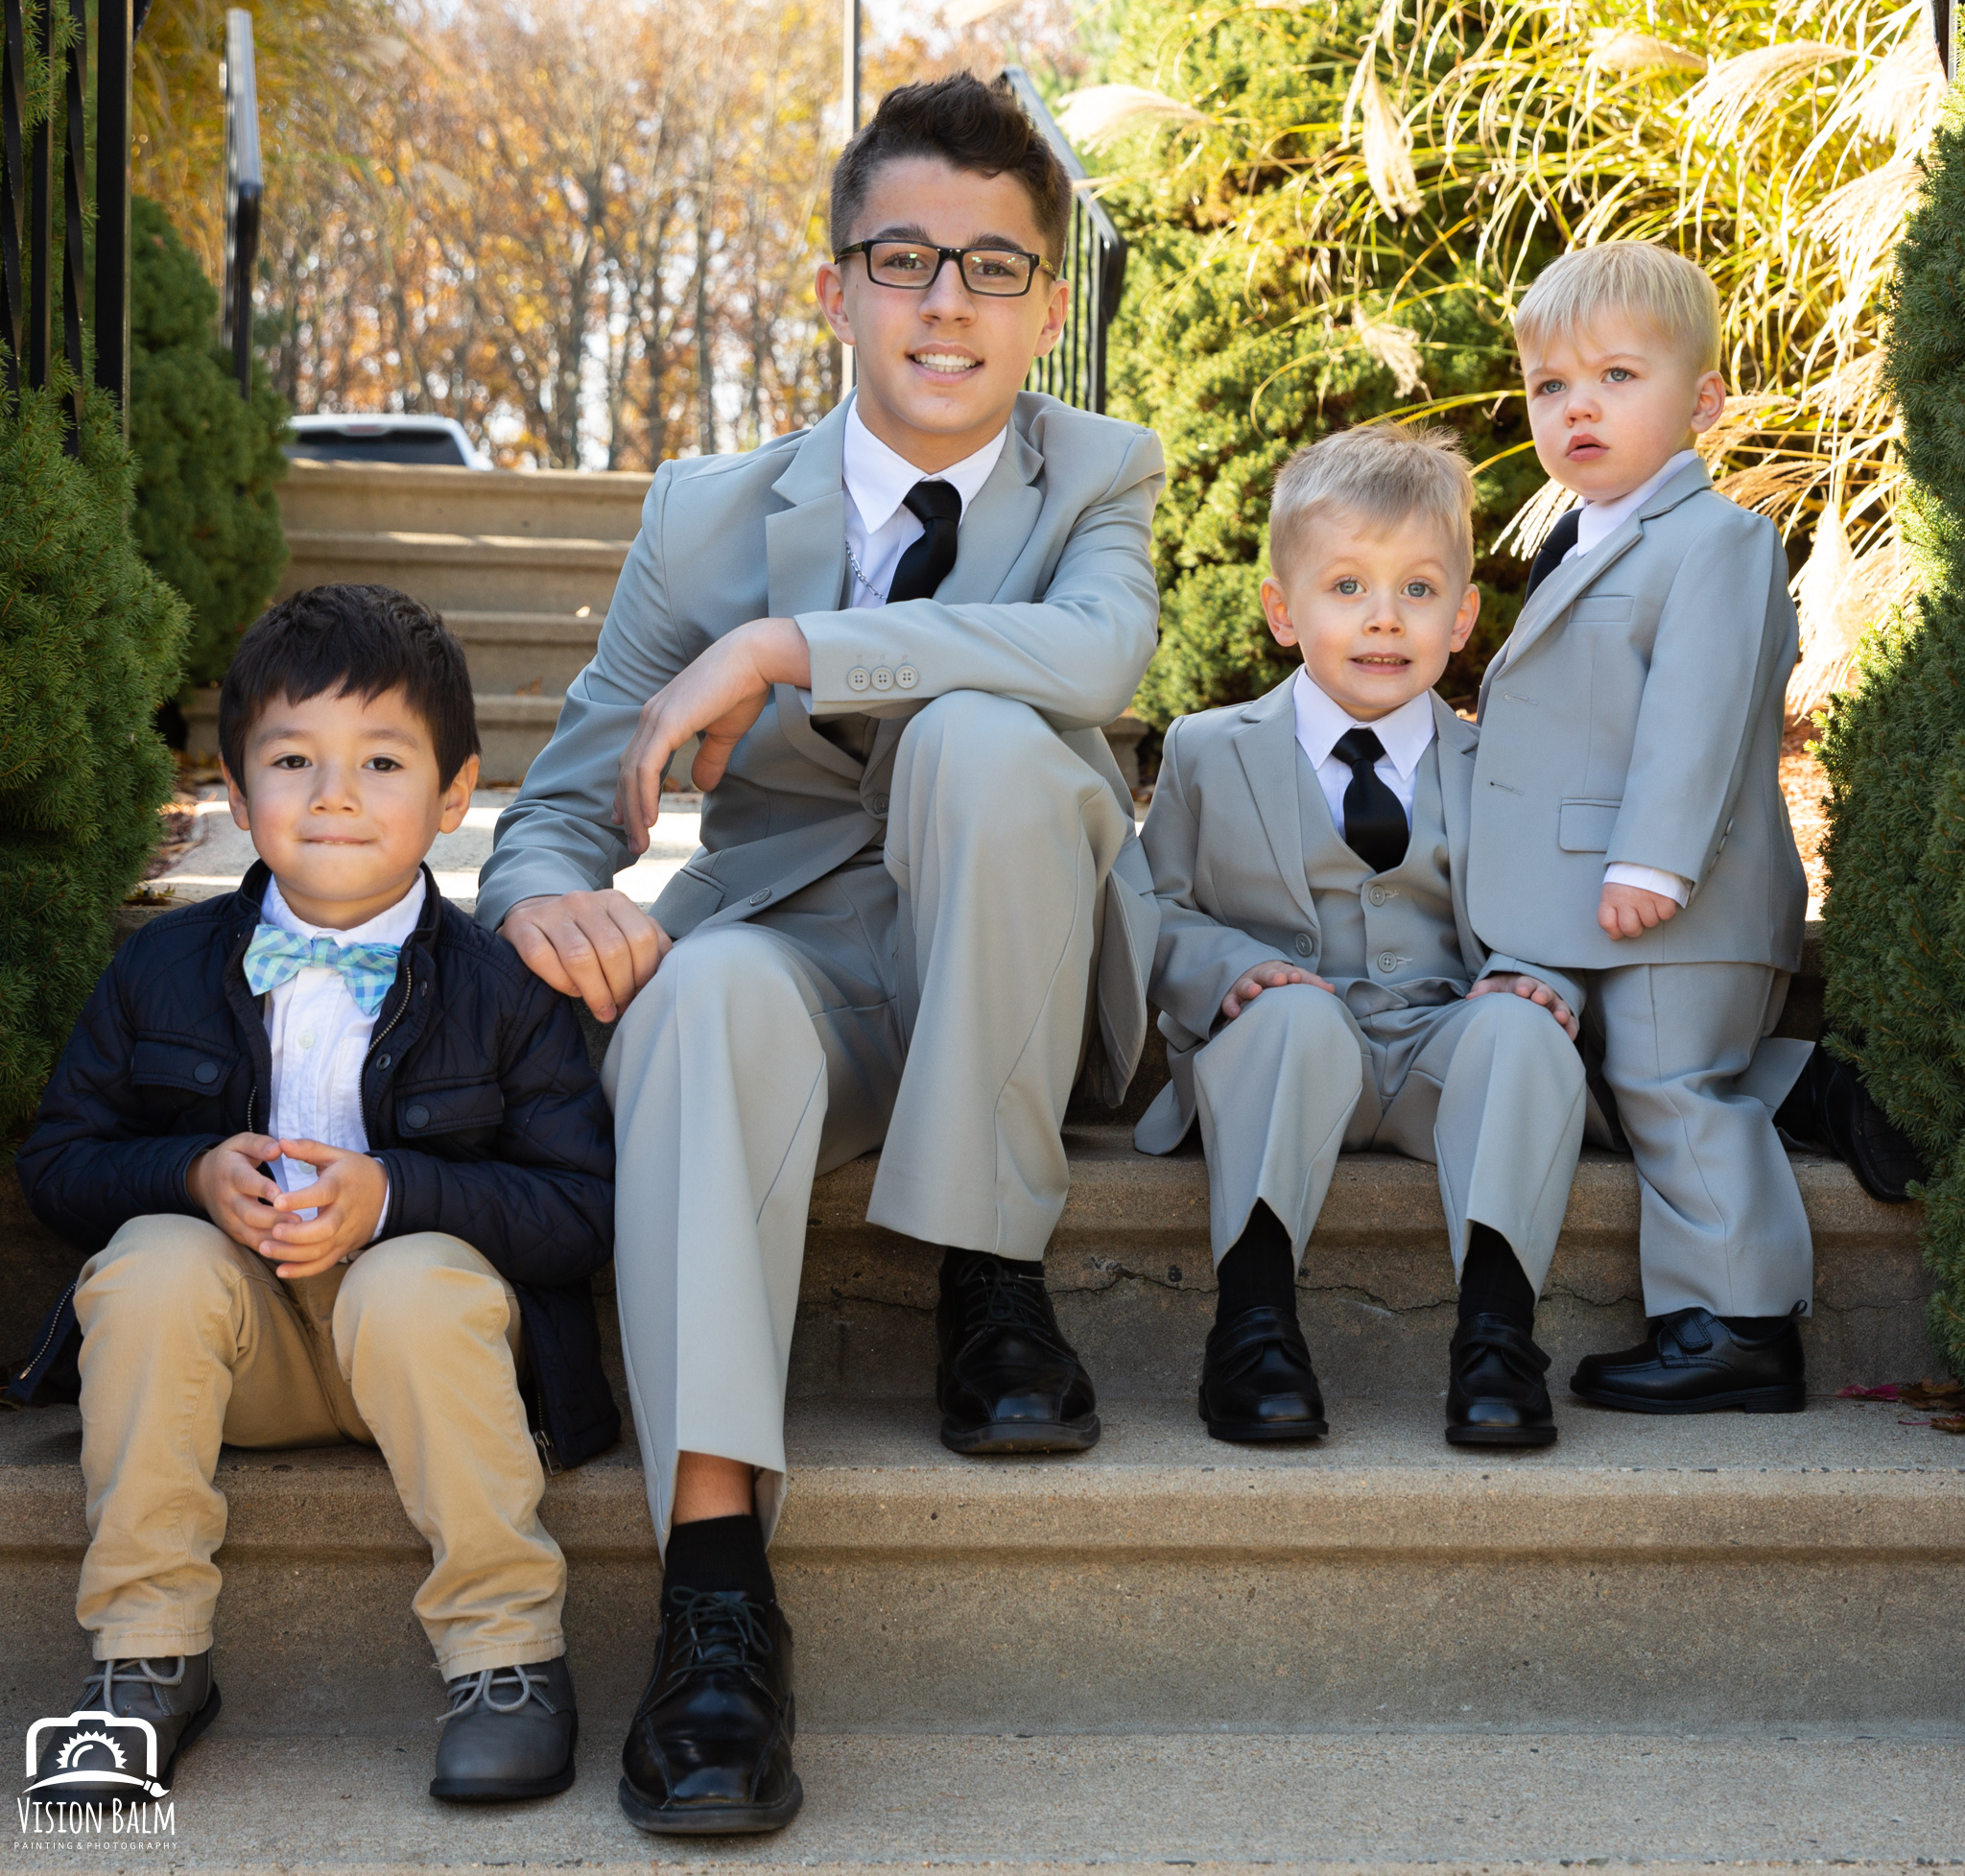 Lifestyle family photo of young boys in suits sitting on the stairs before wedding in Zuka's Hilltop Barn by Vision Balm in Charleston, SC.